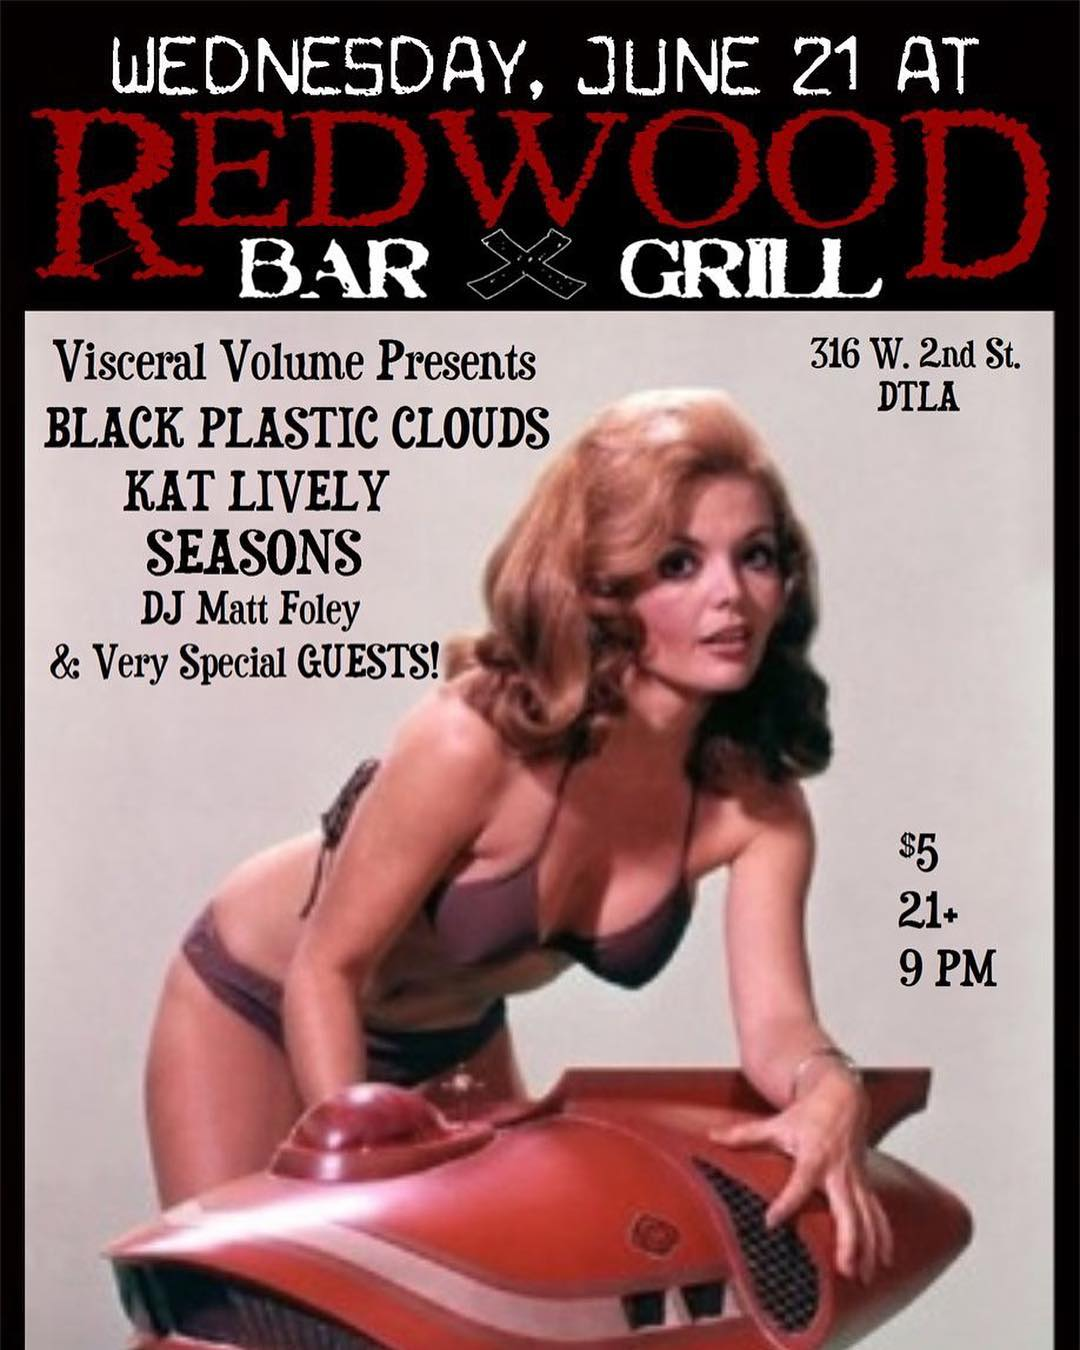 There are some Special Guests @theredwoodbar tonight 11pm-ish only $5 we hear they play @greatamericanmusichall tomorrow.